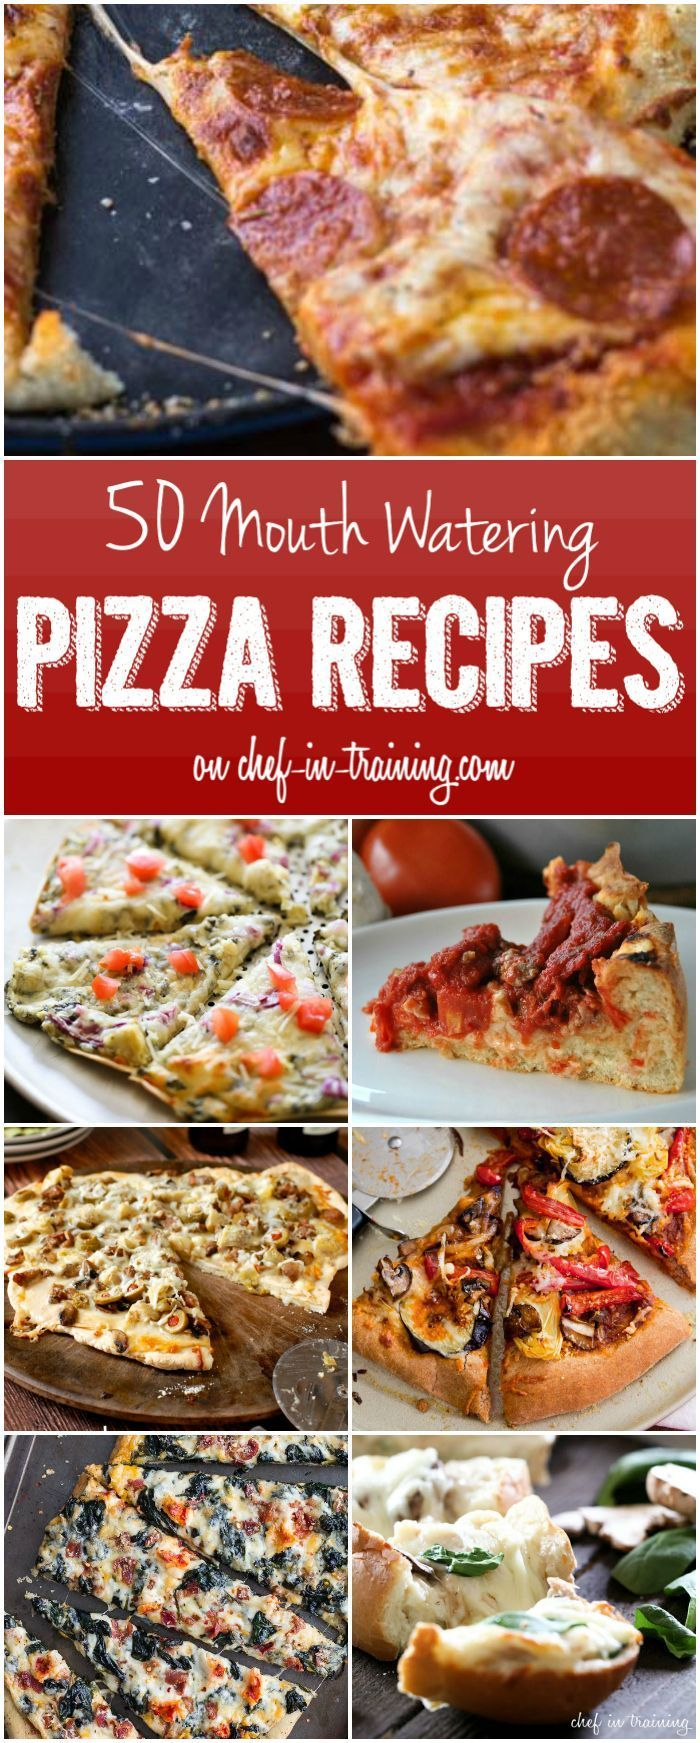 Watering Pizza Recipes 50 Mouth Watering Pizza Recipes at chef-in- …So many great options for the next pizza night!